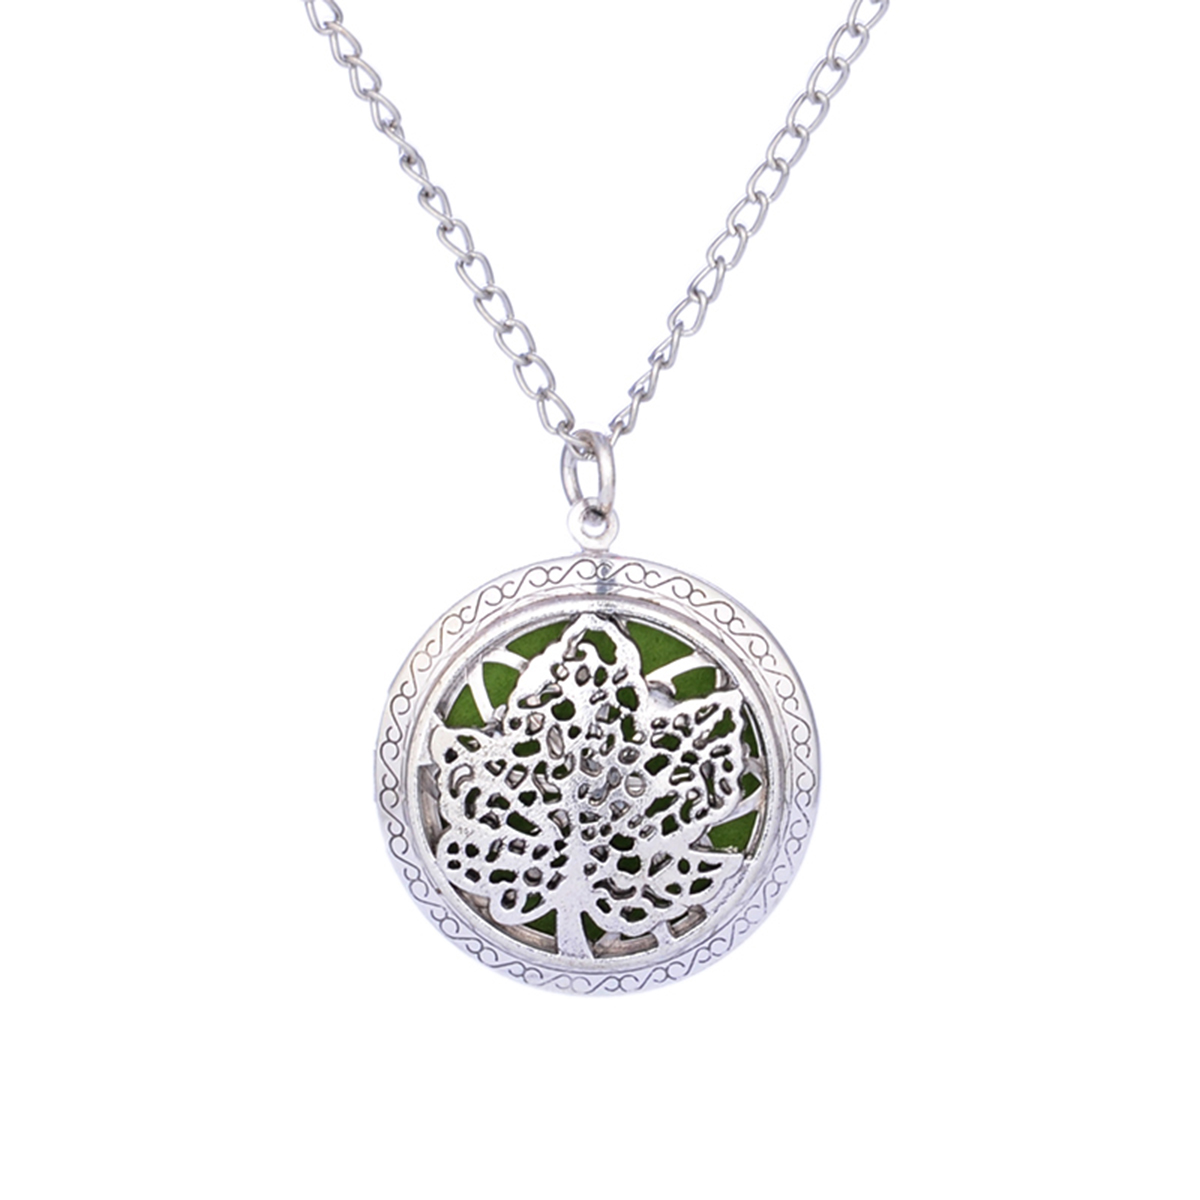 BNIB New Sterling silver 925 Bridesmaid Hello Kitty Necklace Pendant gift boxed